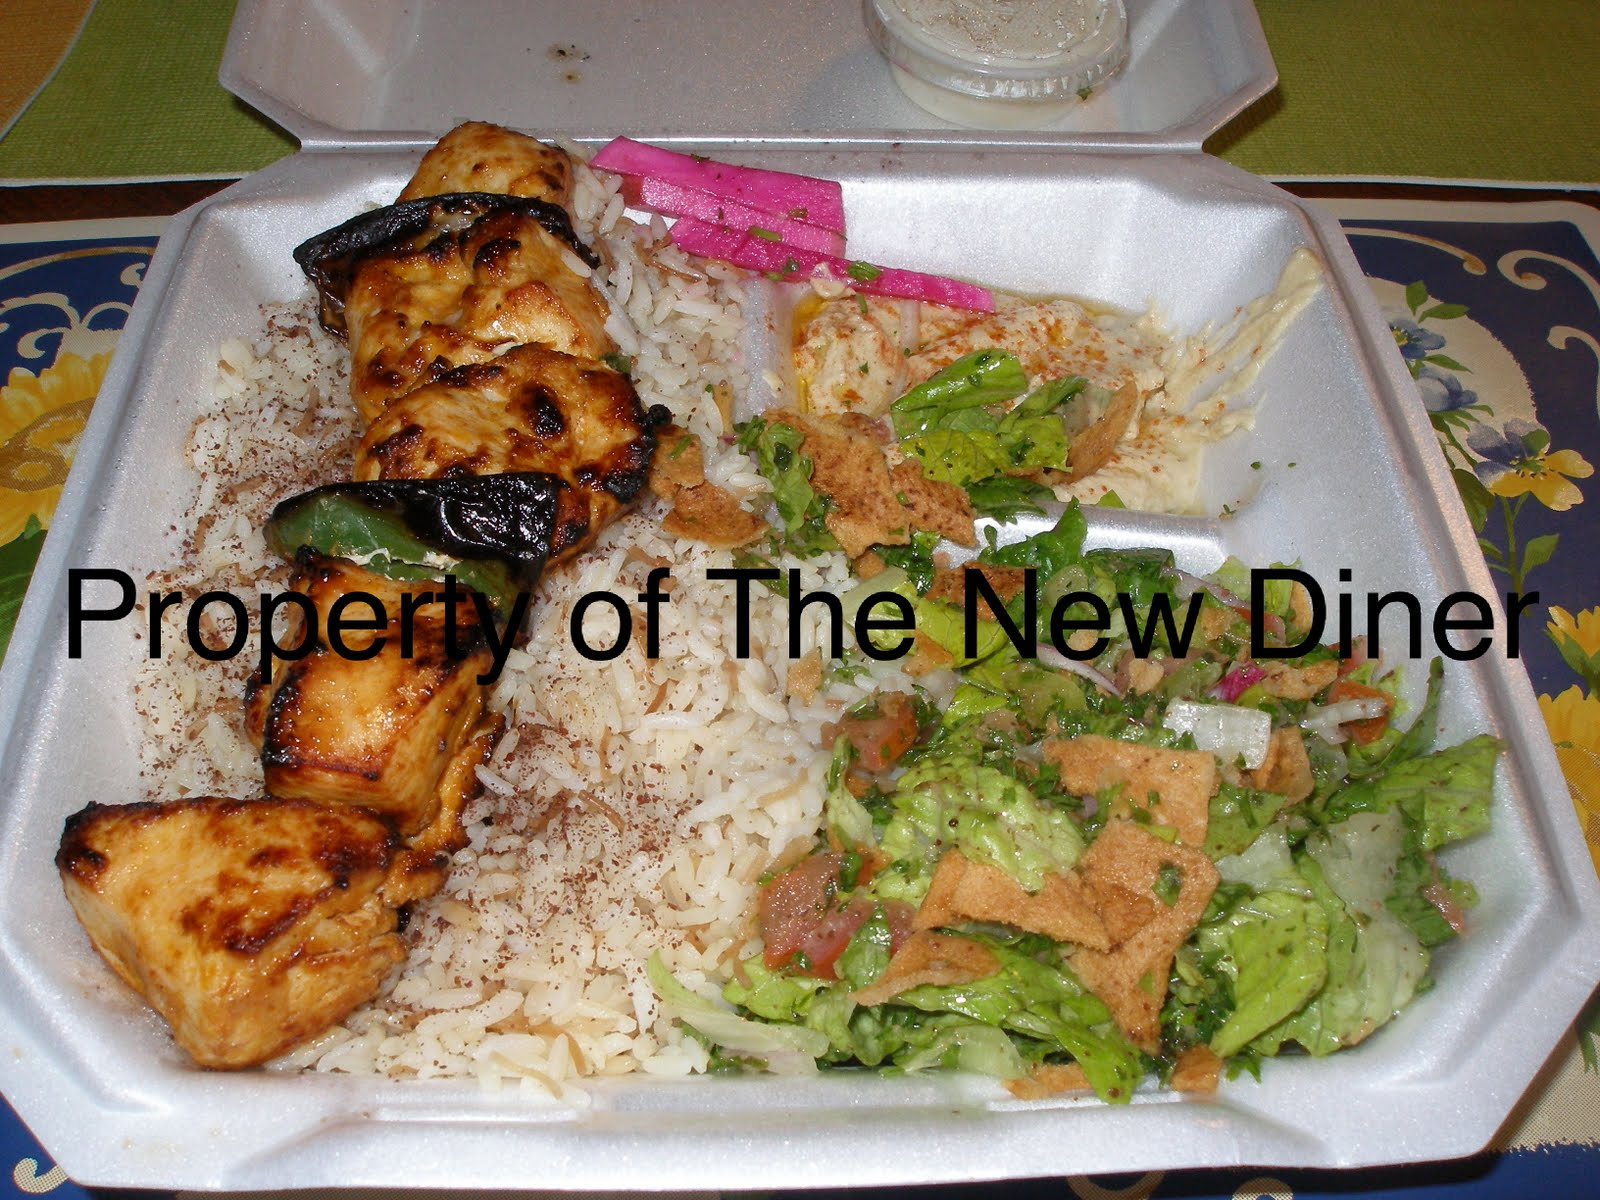 The new diner alina 39 s lebanese cuisine for Alinas lebanese cuisine